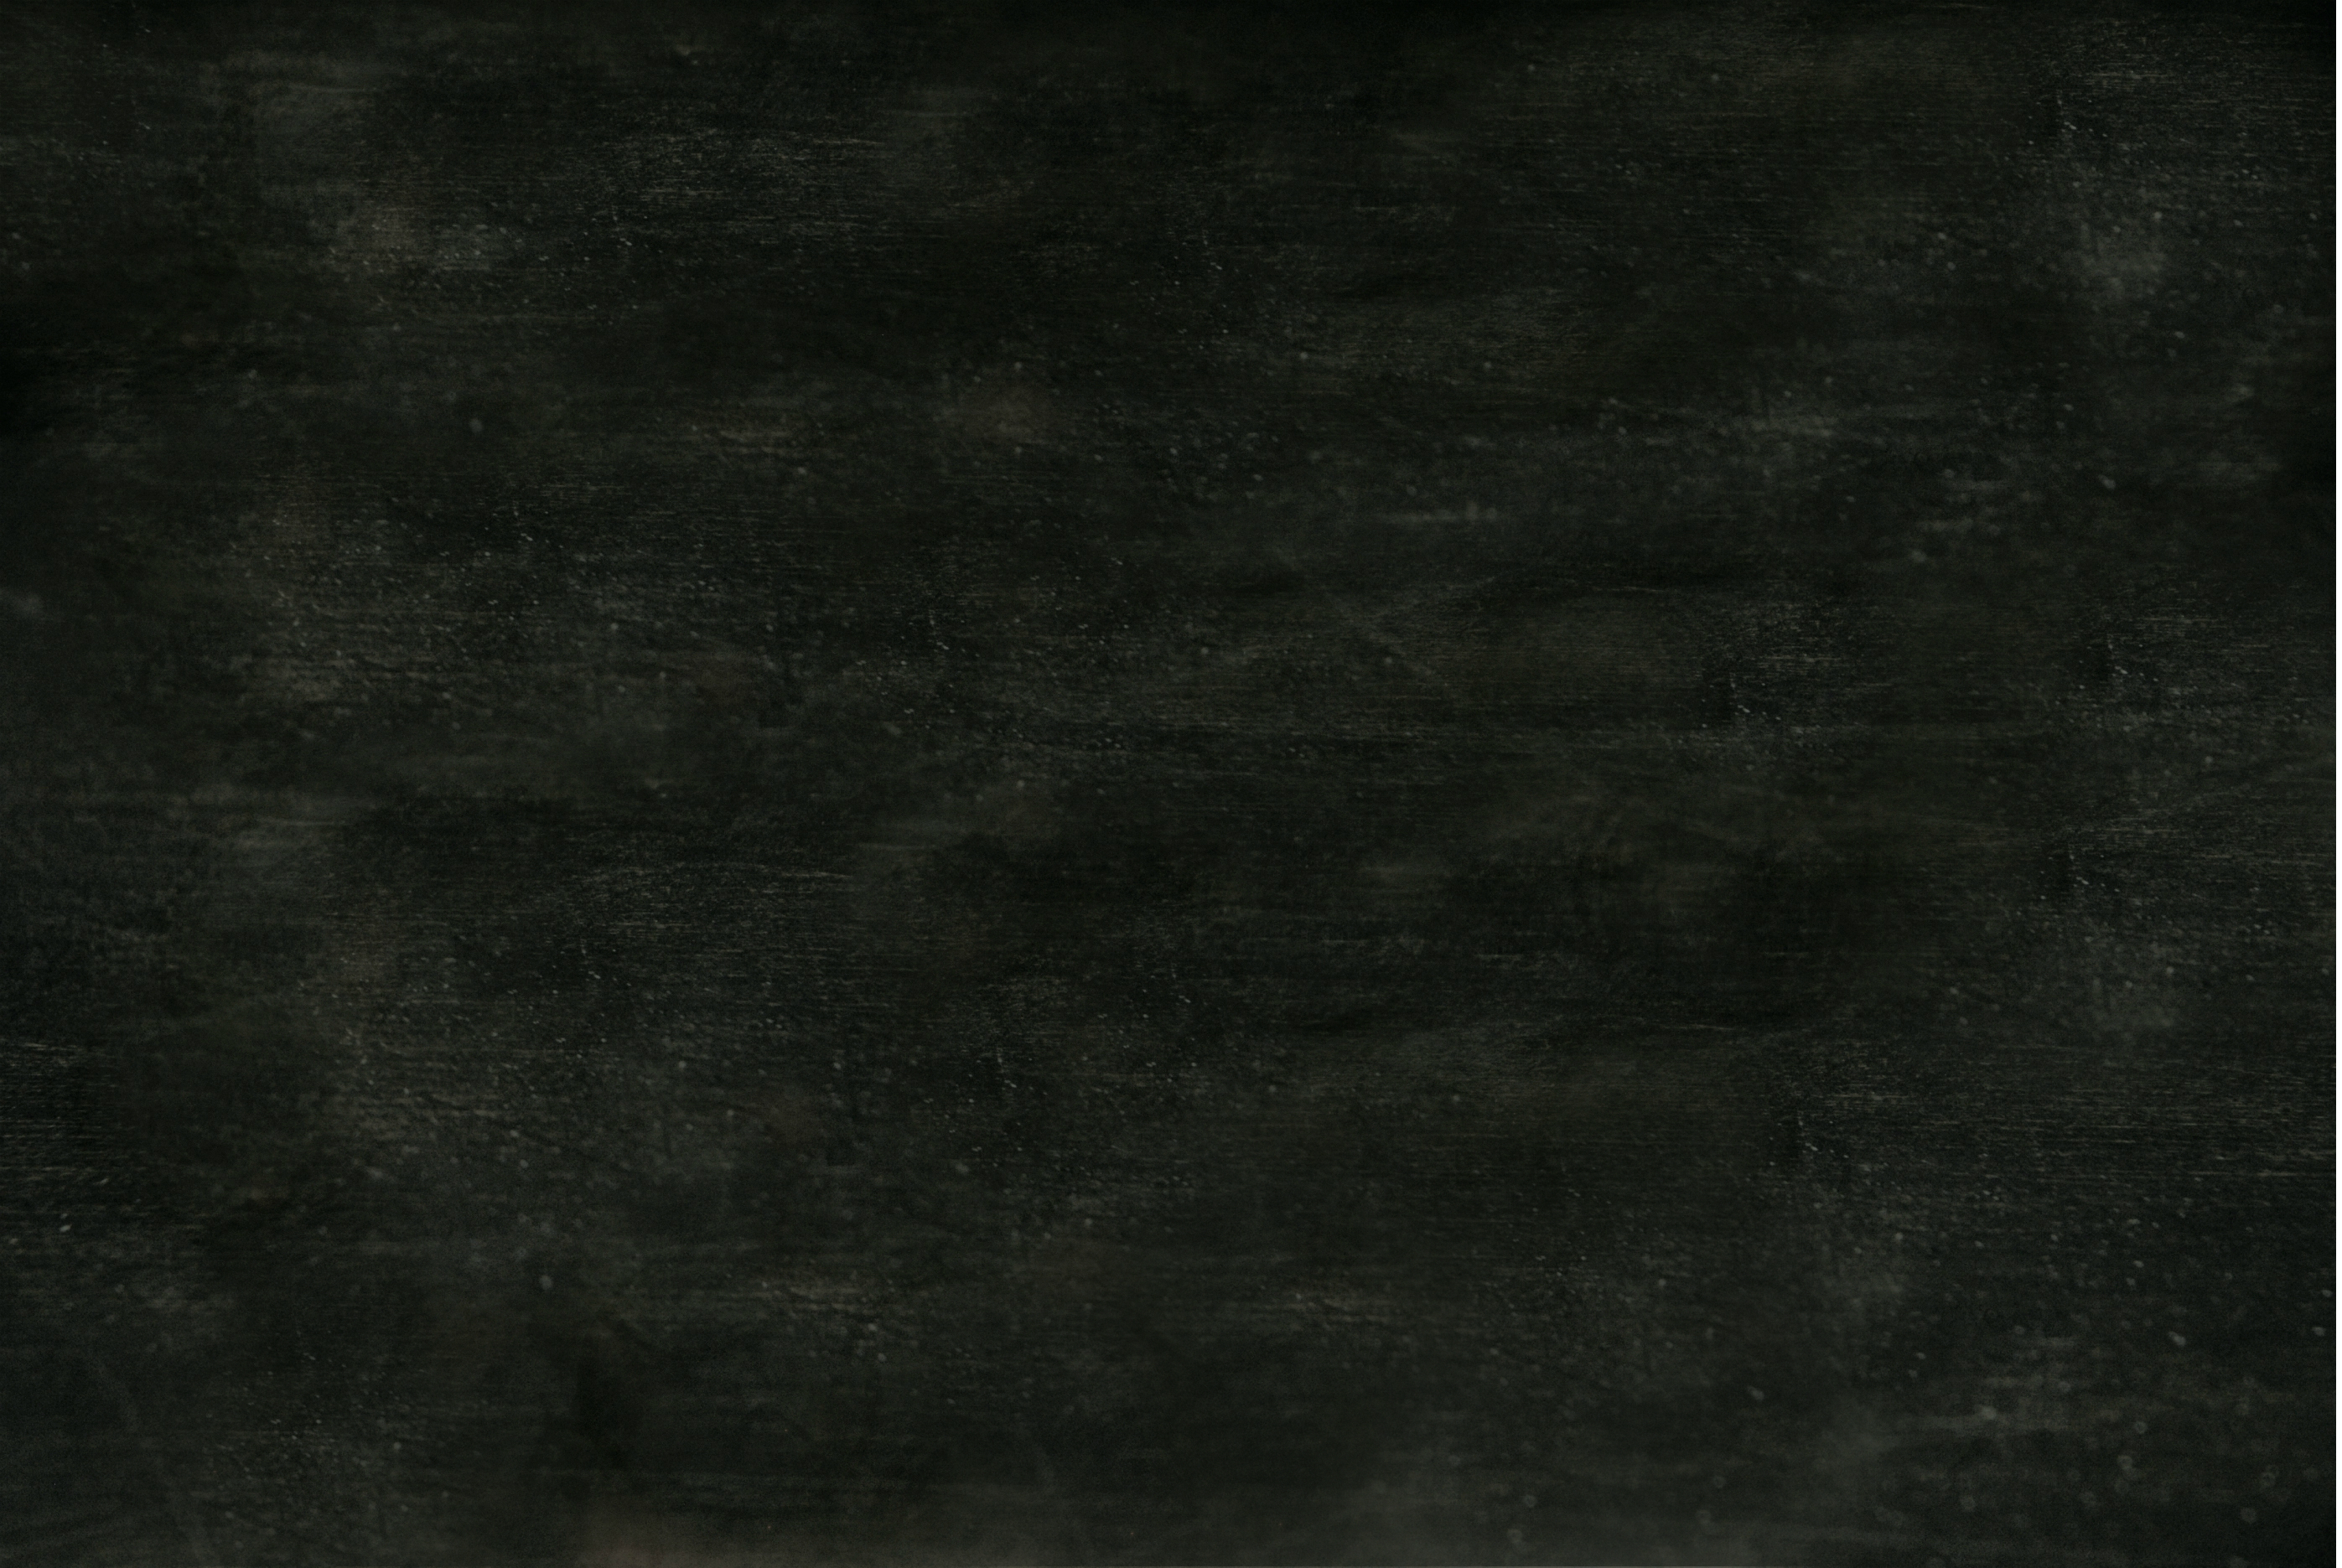 Black Chalkboard Background | Dear JCPS